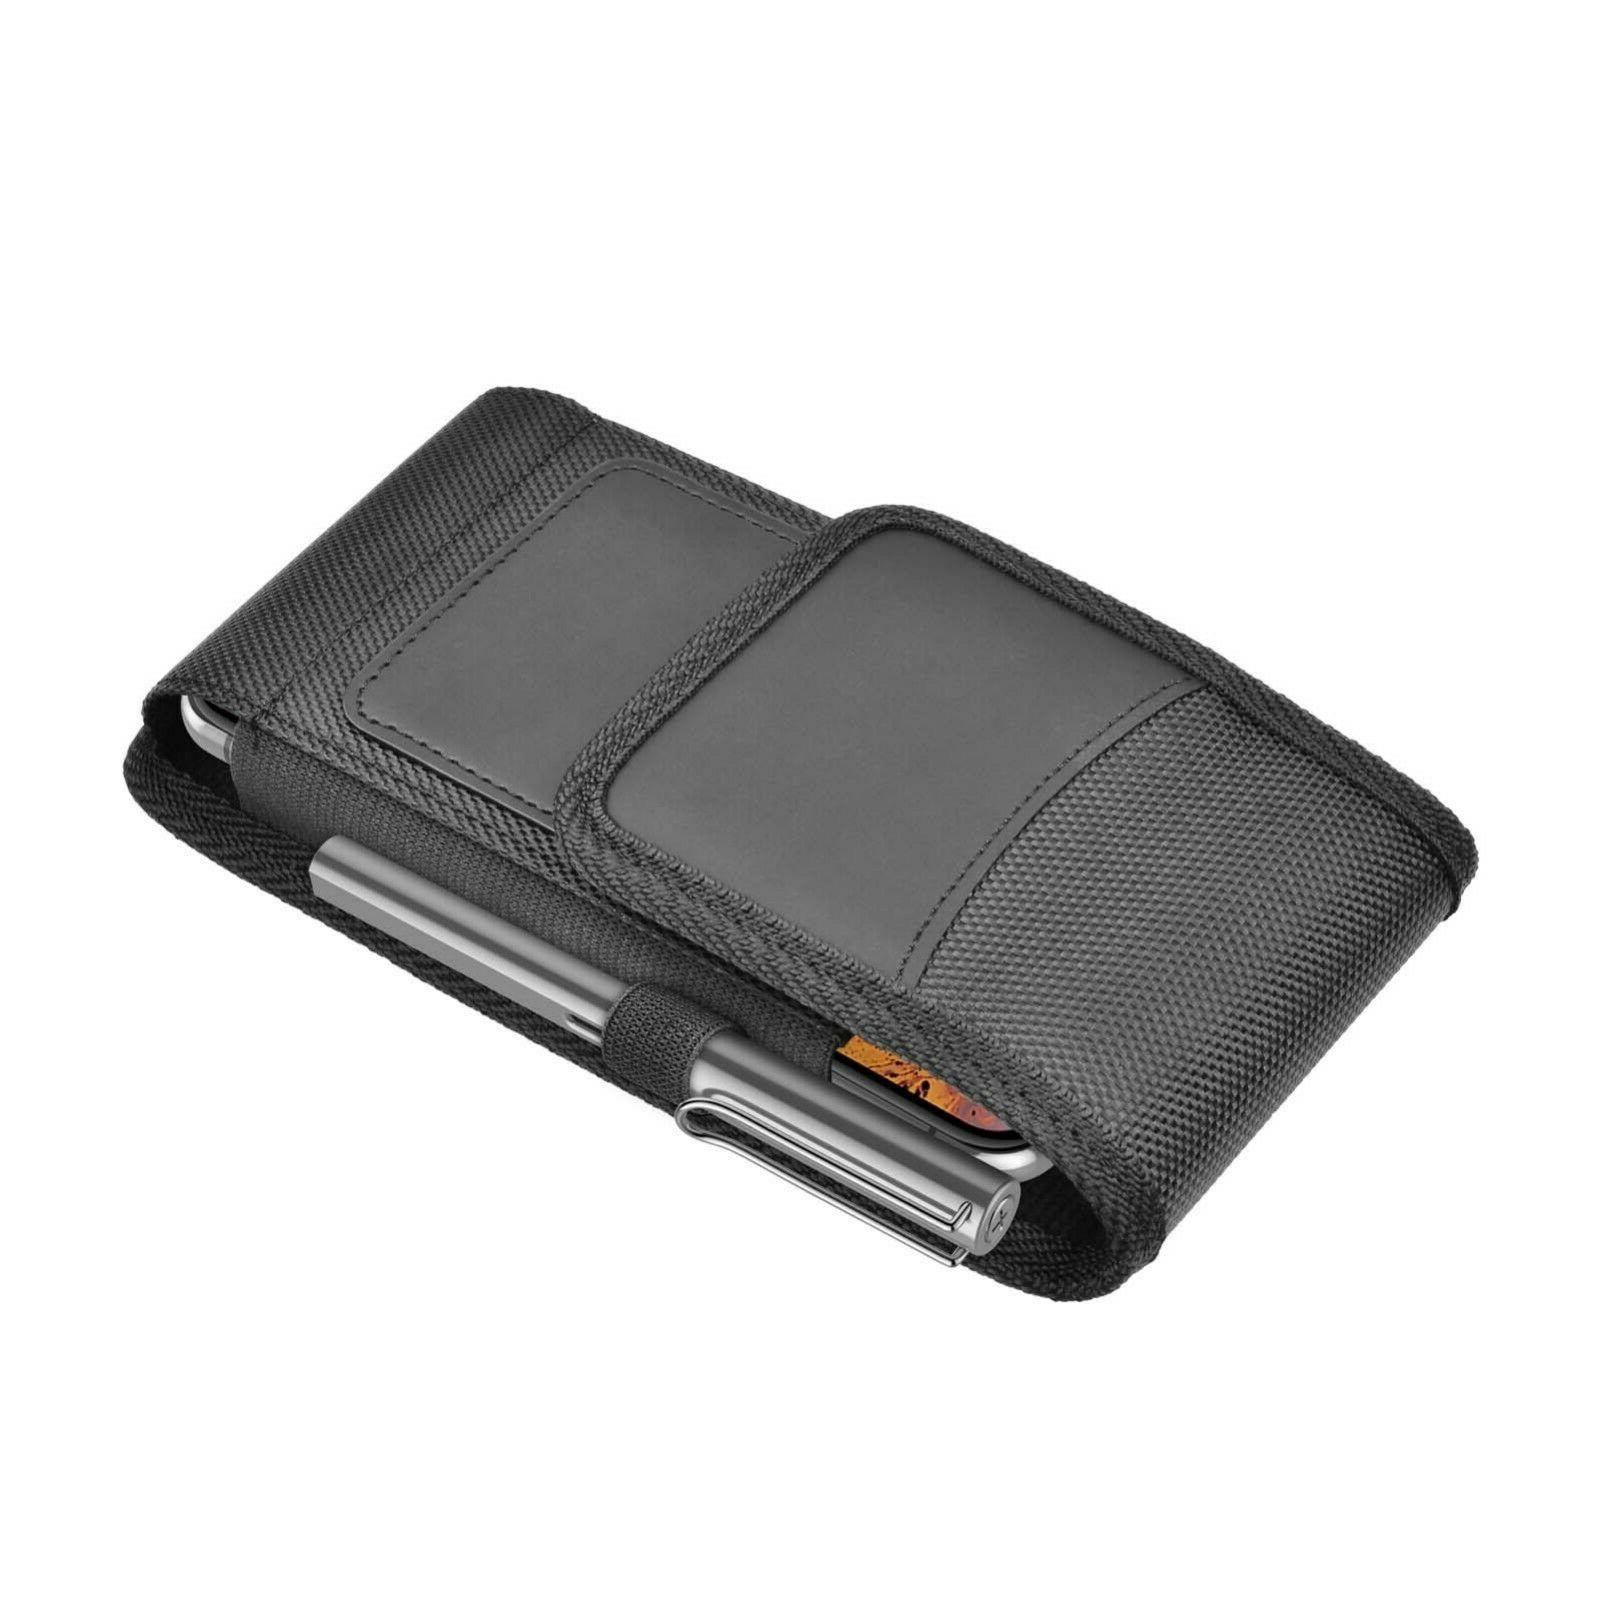 Vertical Nylon Holster Pouch with Clip Loop For Samsung